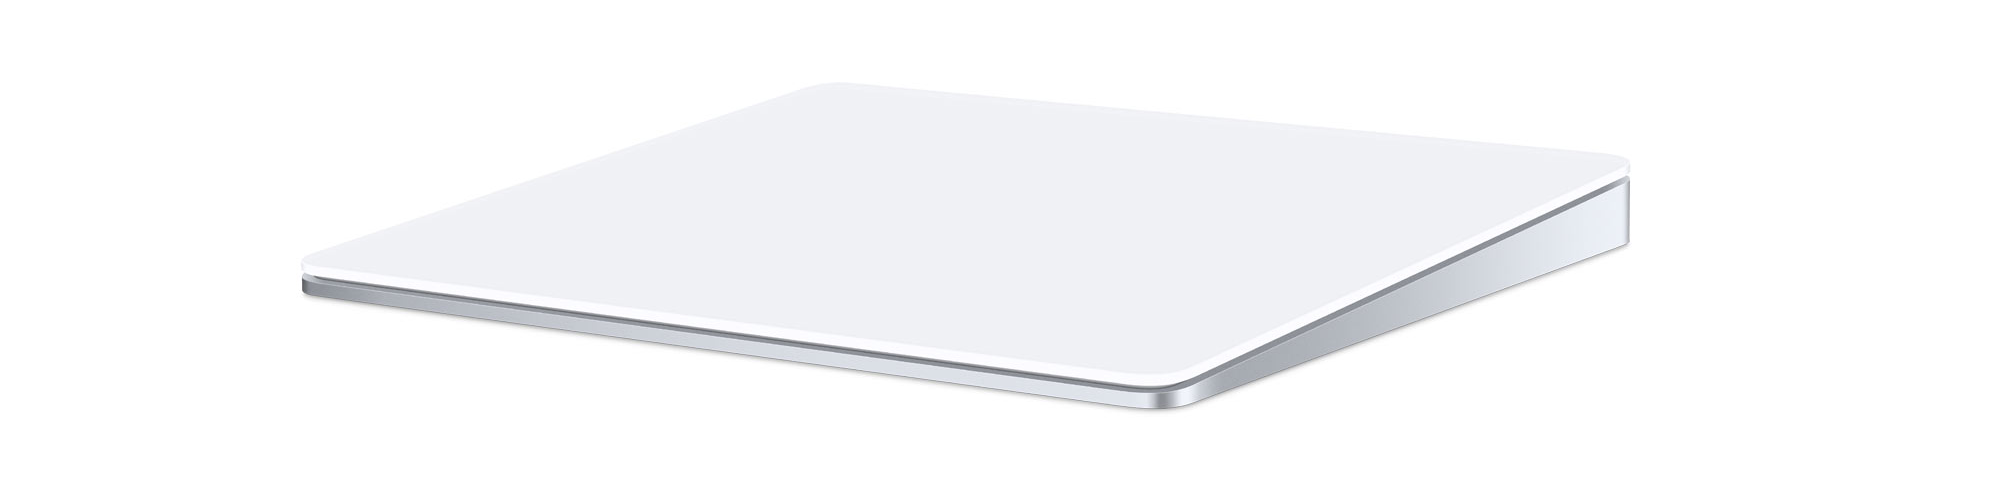 Screen Shot 2015 10 13 at 10.10.03 PM - Apple launches the Magic Trackpad 2 with Force Touch, Magic Mouse 2 & Magic Keyboard